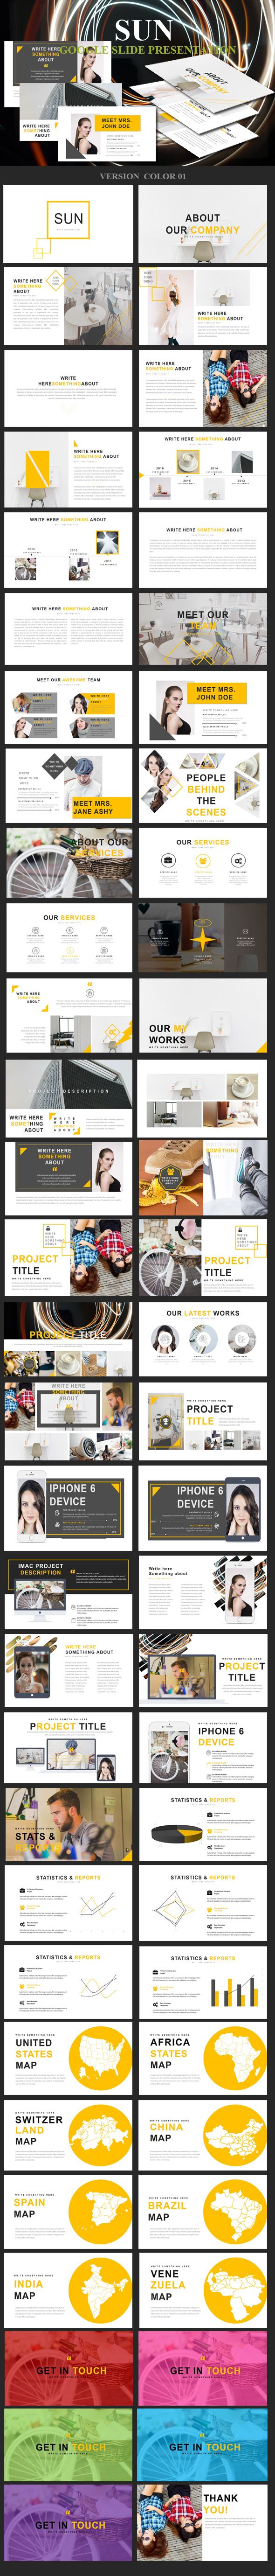 Sun Google Slide Presentation  Business Powerpoint Templates